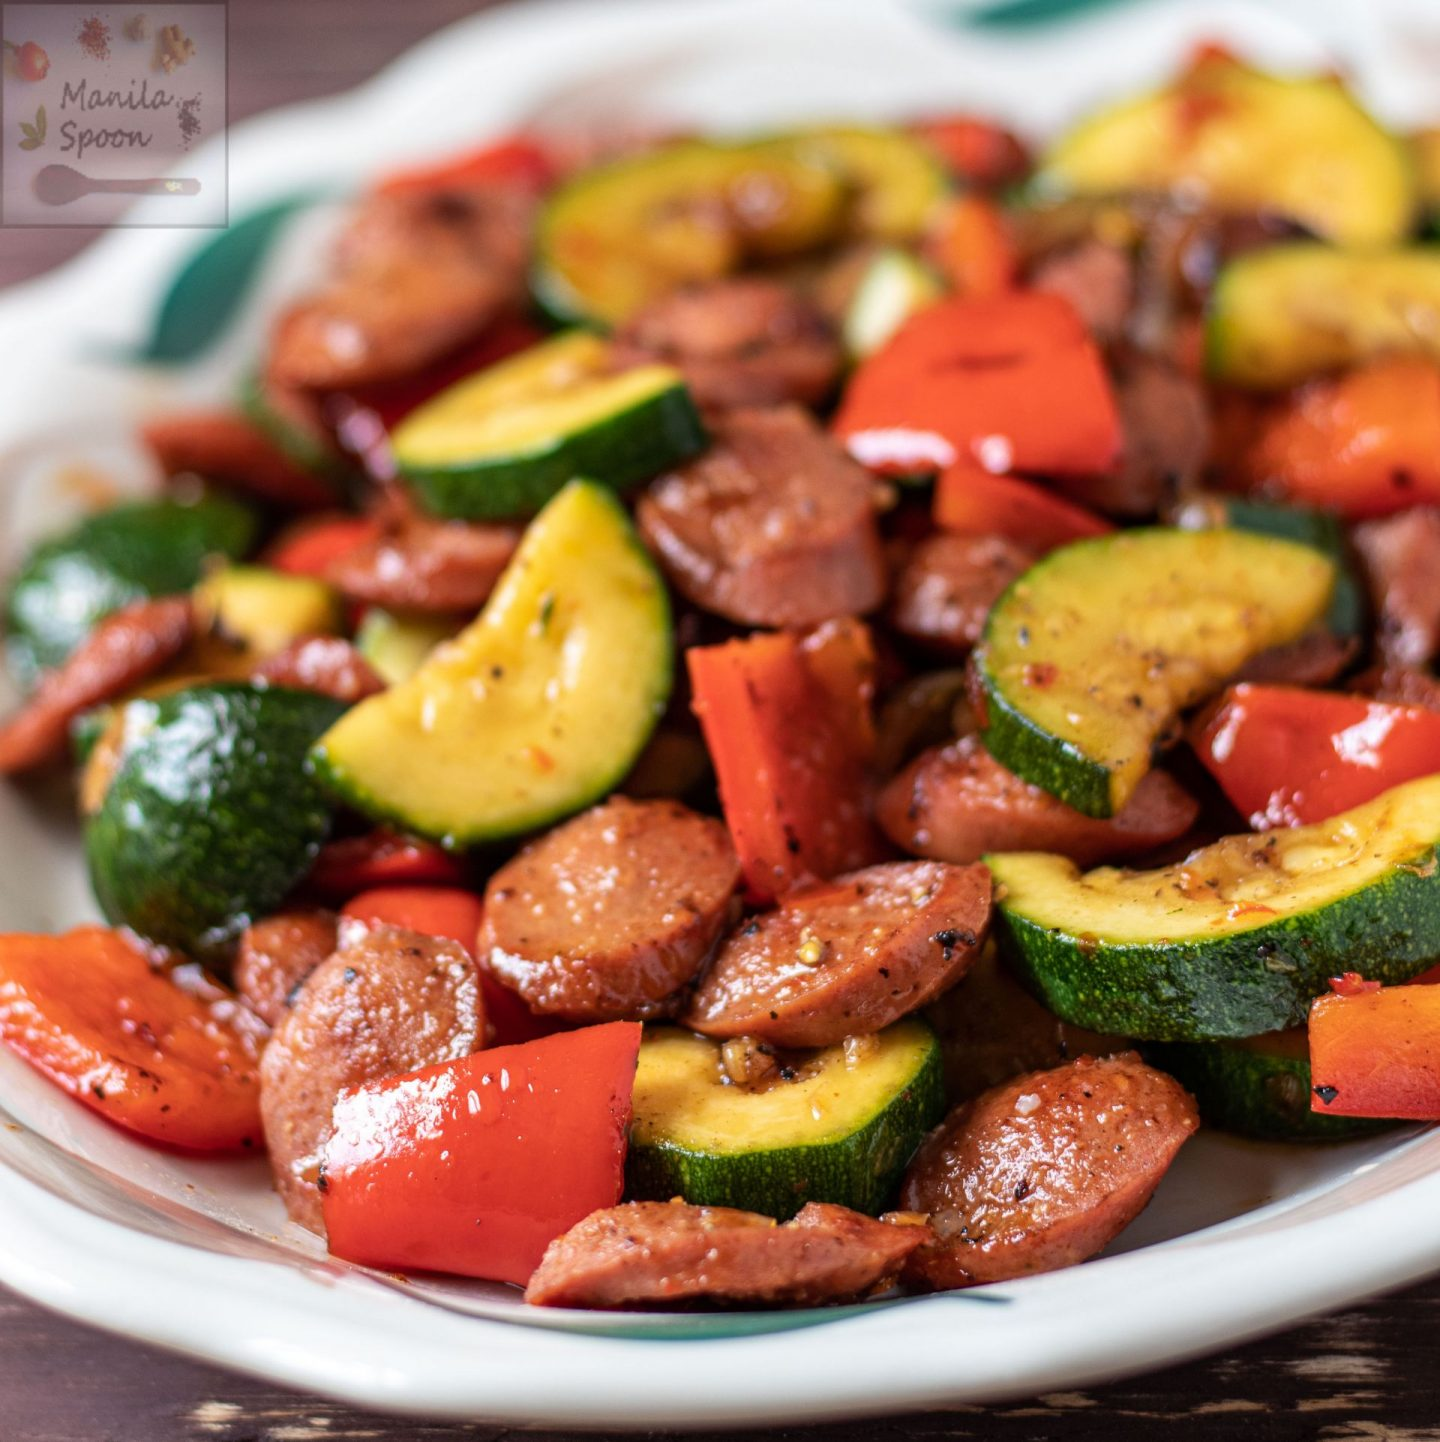 Grilled Sausages with Peppers in Sweet Chili Sauce